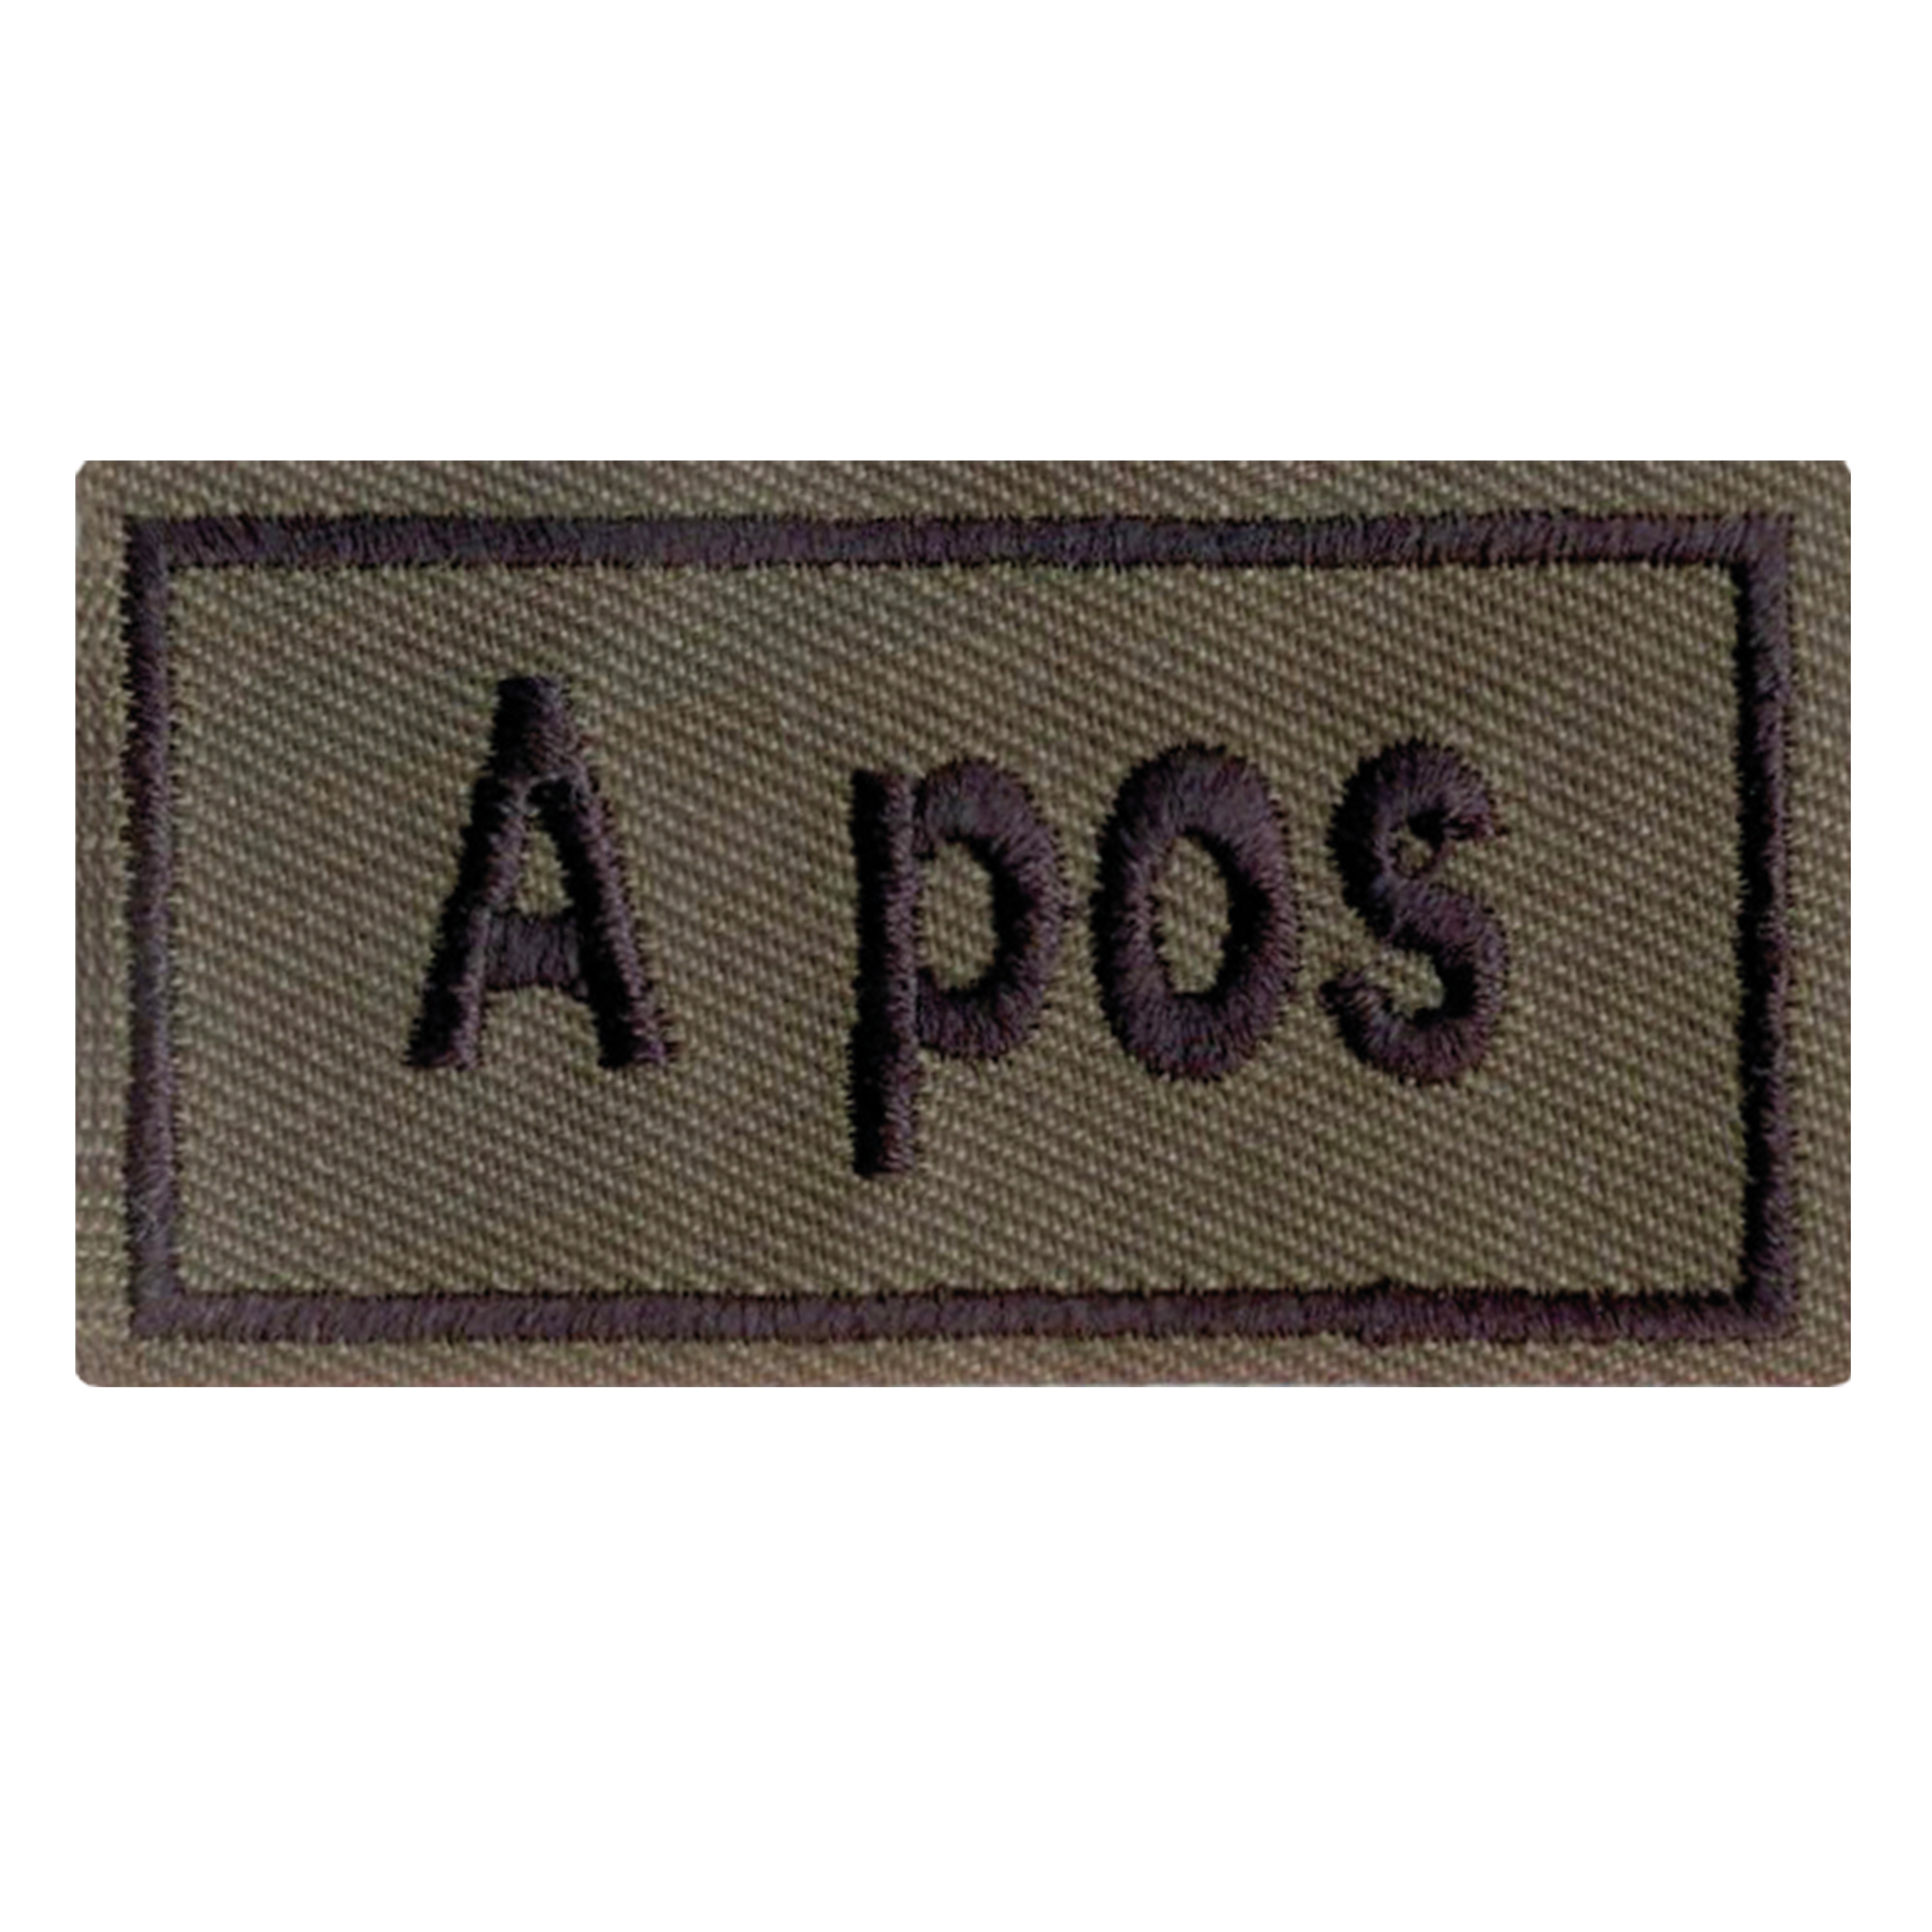 Blood Type Patch A pos. olive